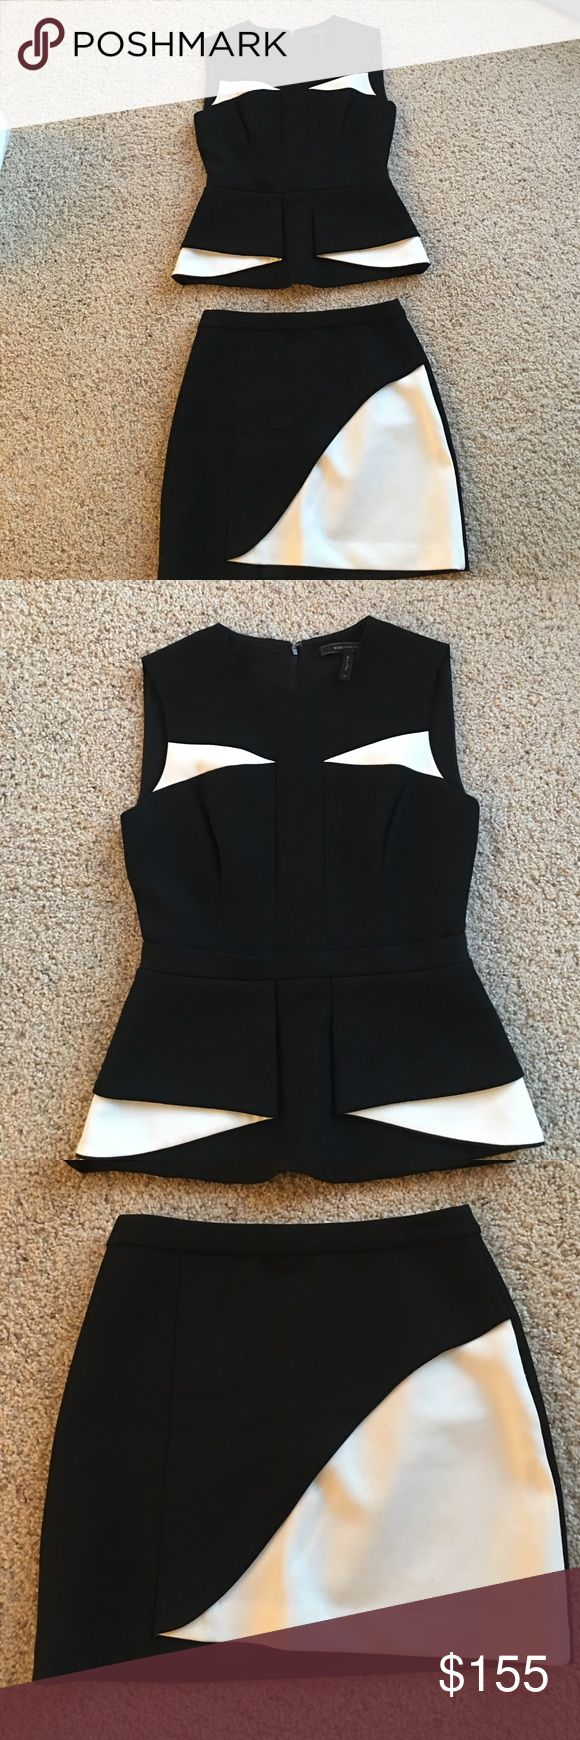 Two pieces dresses suits Black and white tops and A line skirt, top size: xs, skirt size: xxs. Sale whole set. BCBGMaxAzria Other